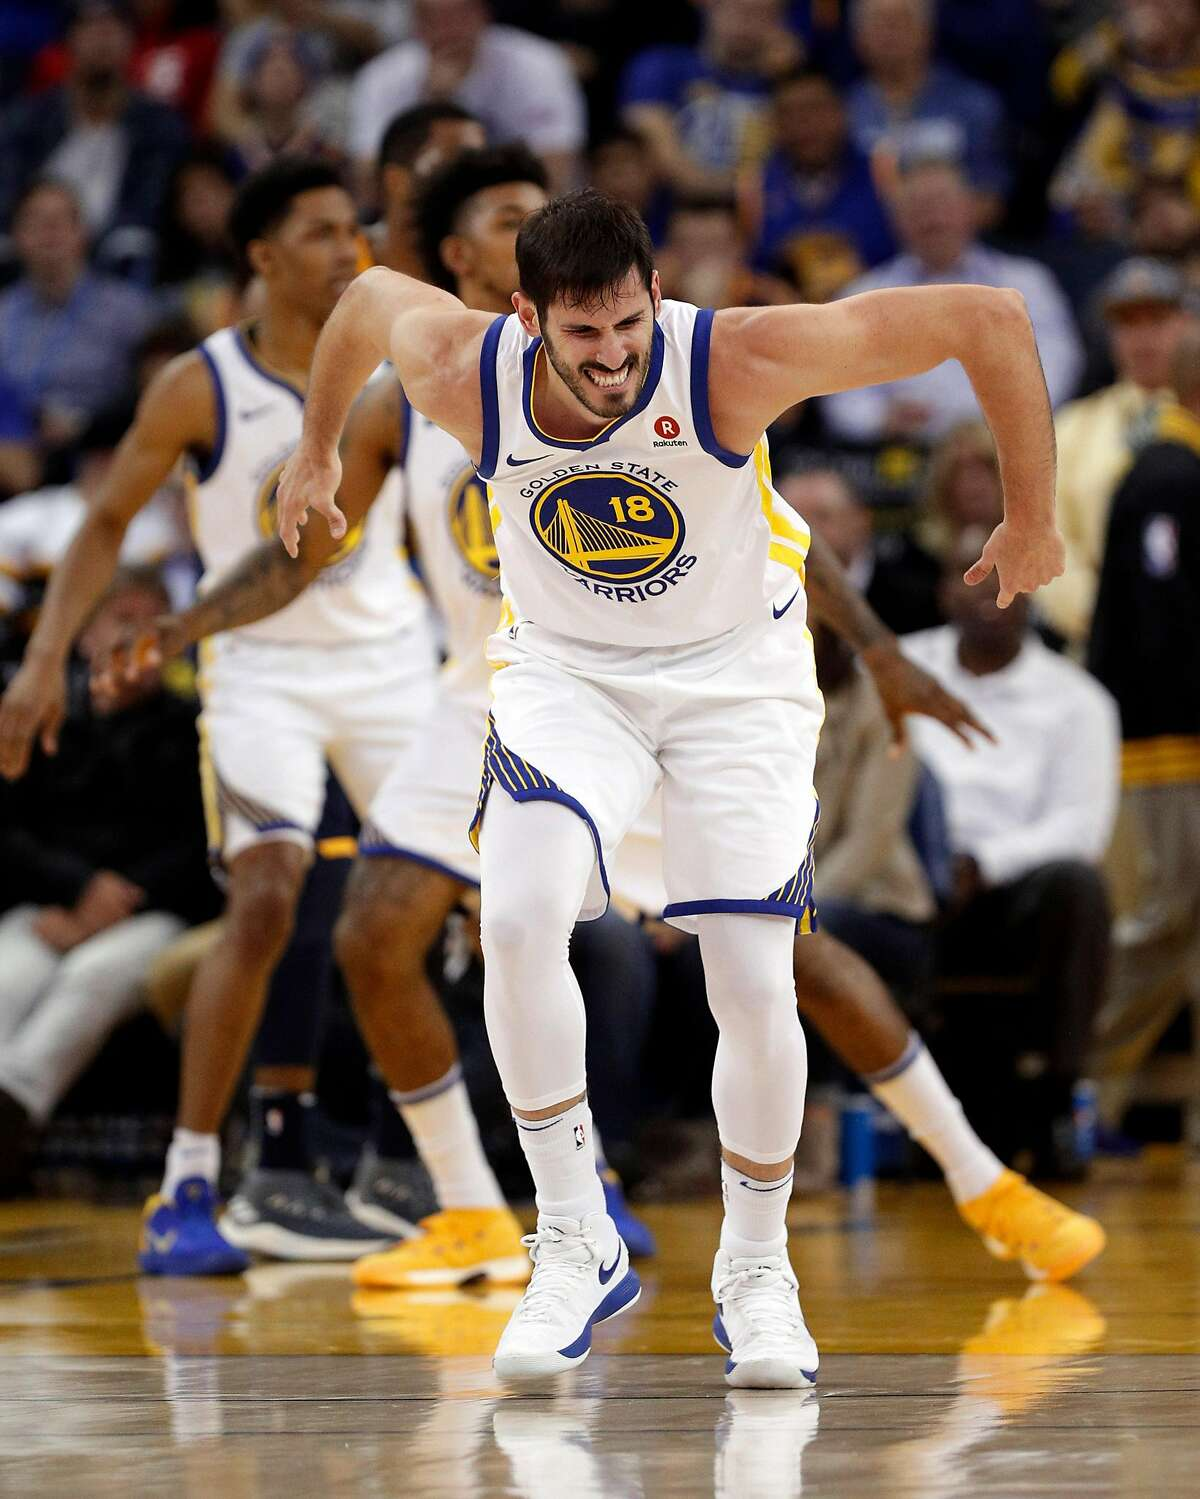 Omri Casspi (18) grimaces after injuring his ankle in the second half as the Golden State Warriors played the Utah Jazz at Oracle Arena in Oakland on Wednesday, Dec. 27, 2017.